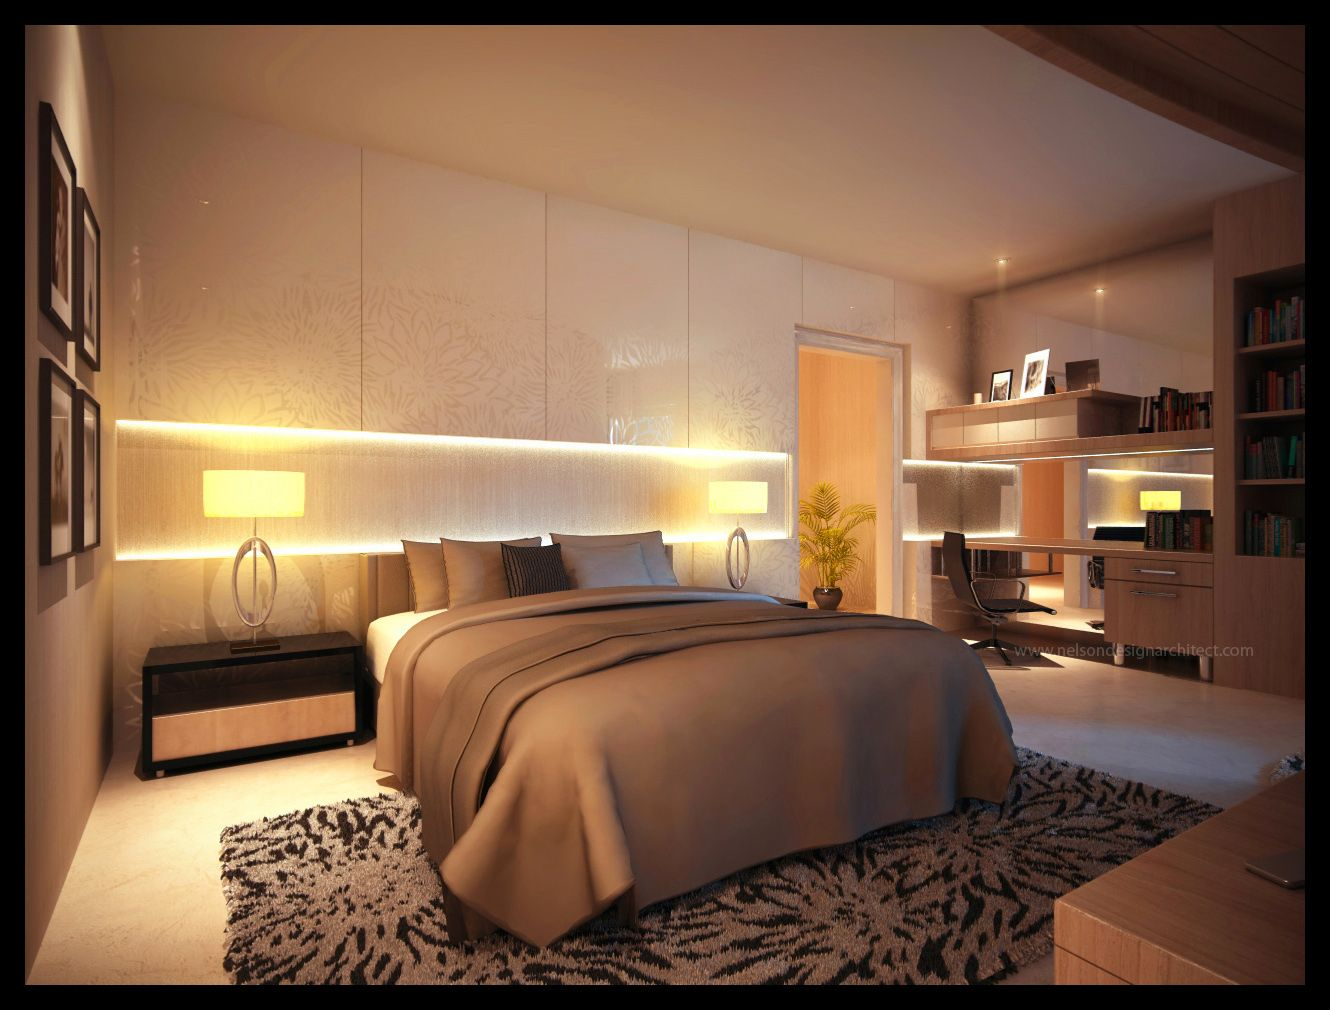 1000+ images about Bedroom Ideas on Pinterest - ^